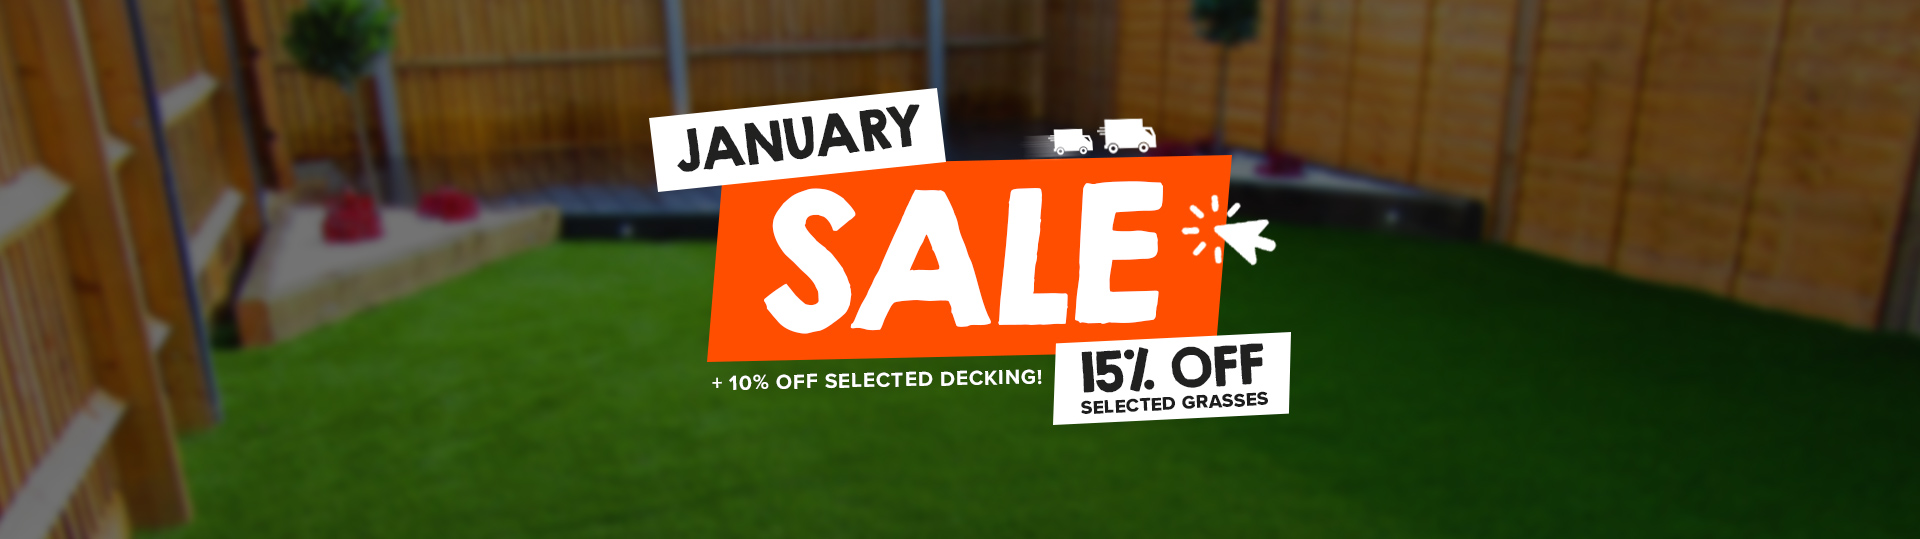 Fylde Grass January 2021 Grass and decking sale banner